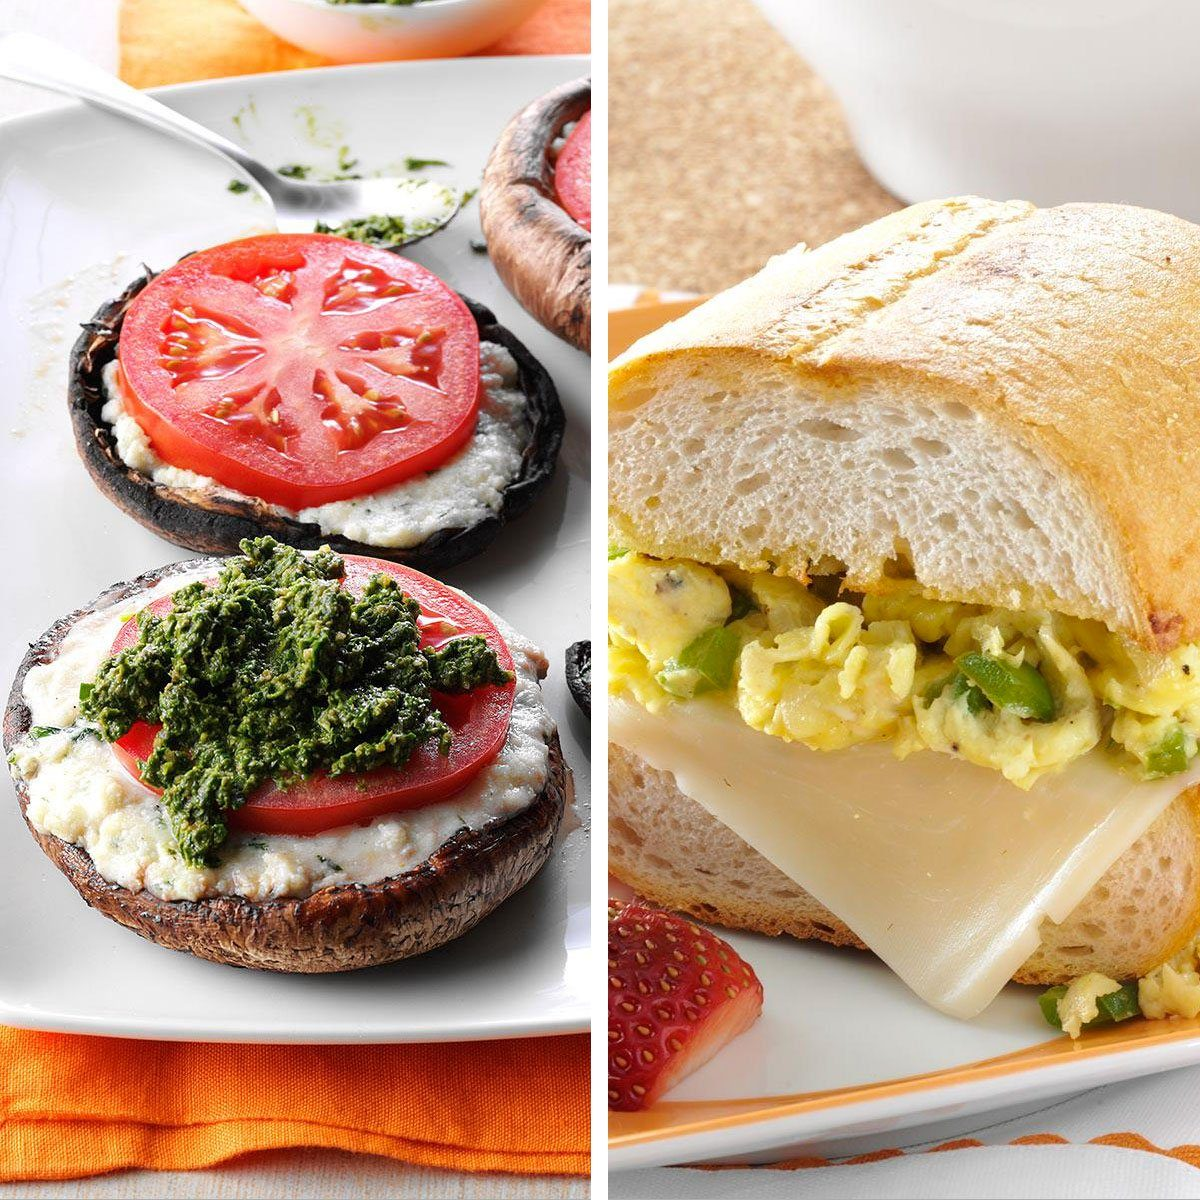 Mushroom and traditional bread sandwiches side by side